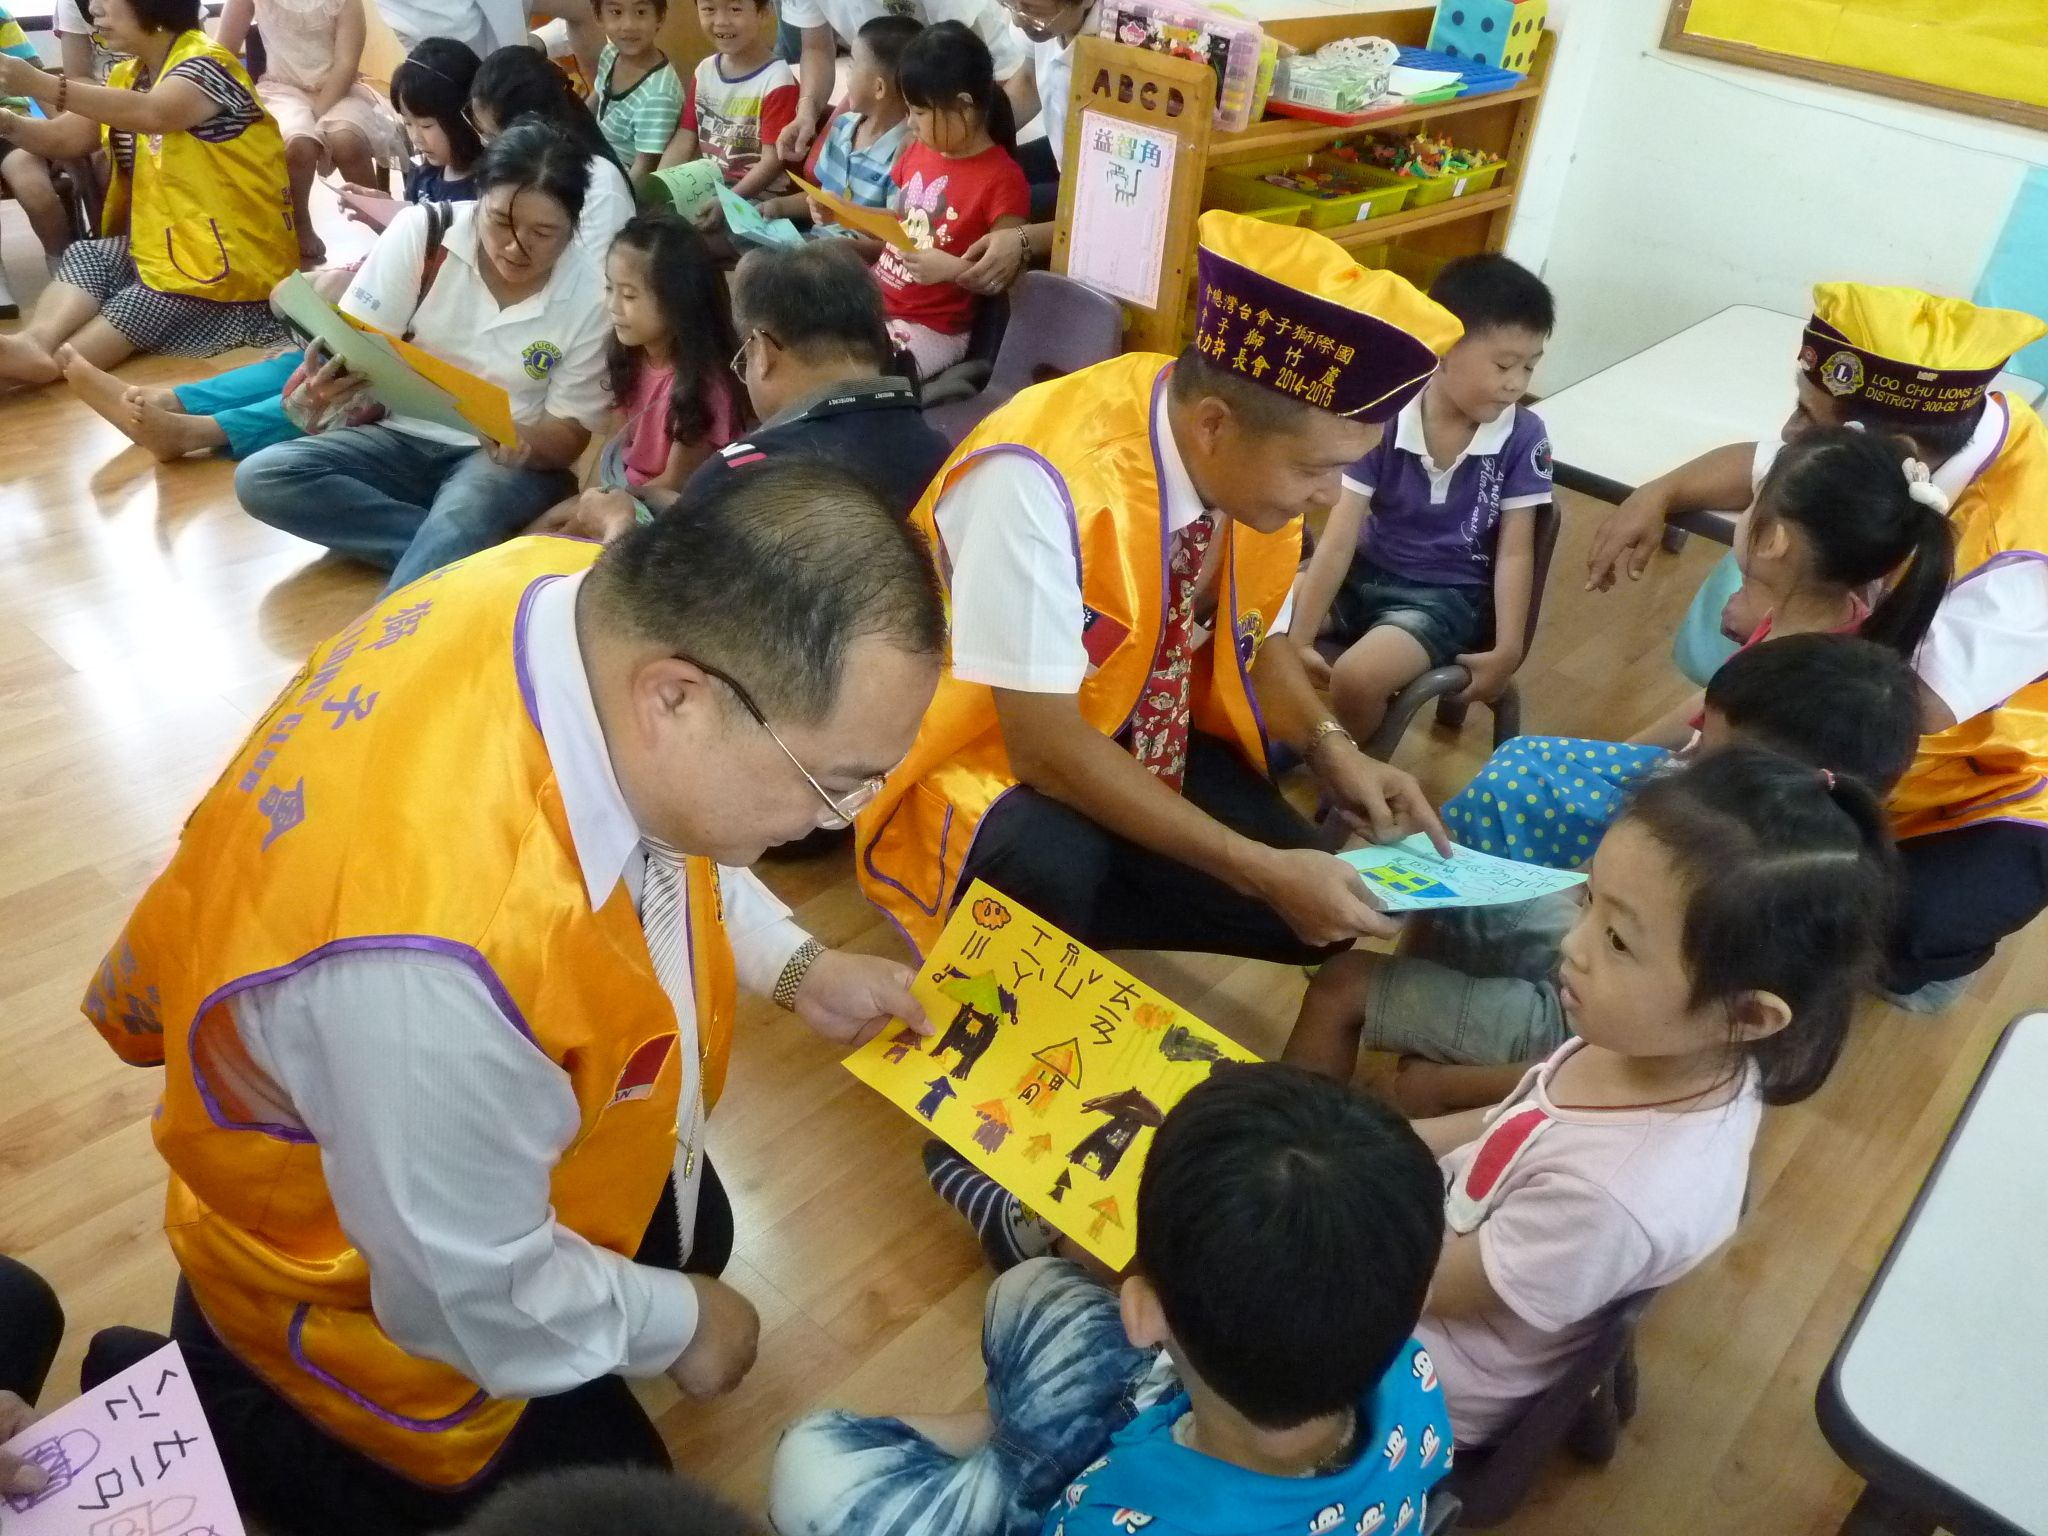 Taoyuan Loochu #LionsClub (Taiwan) organized kindergarten painting session focused on a caring for things